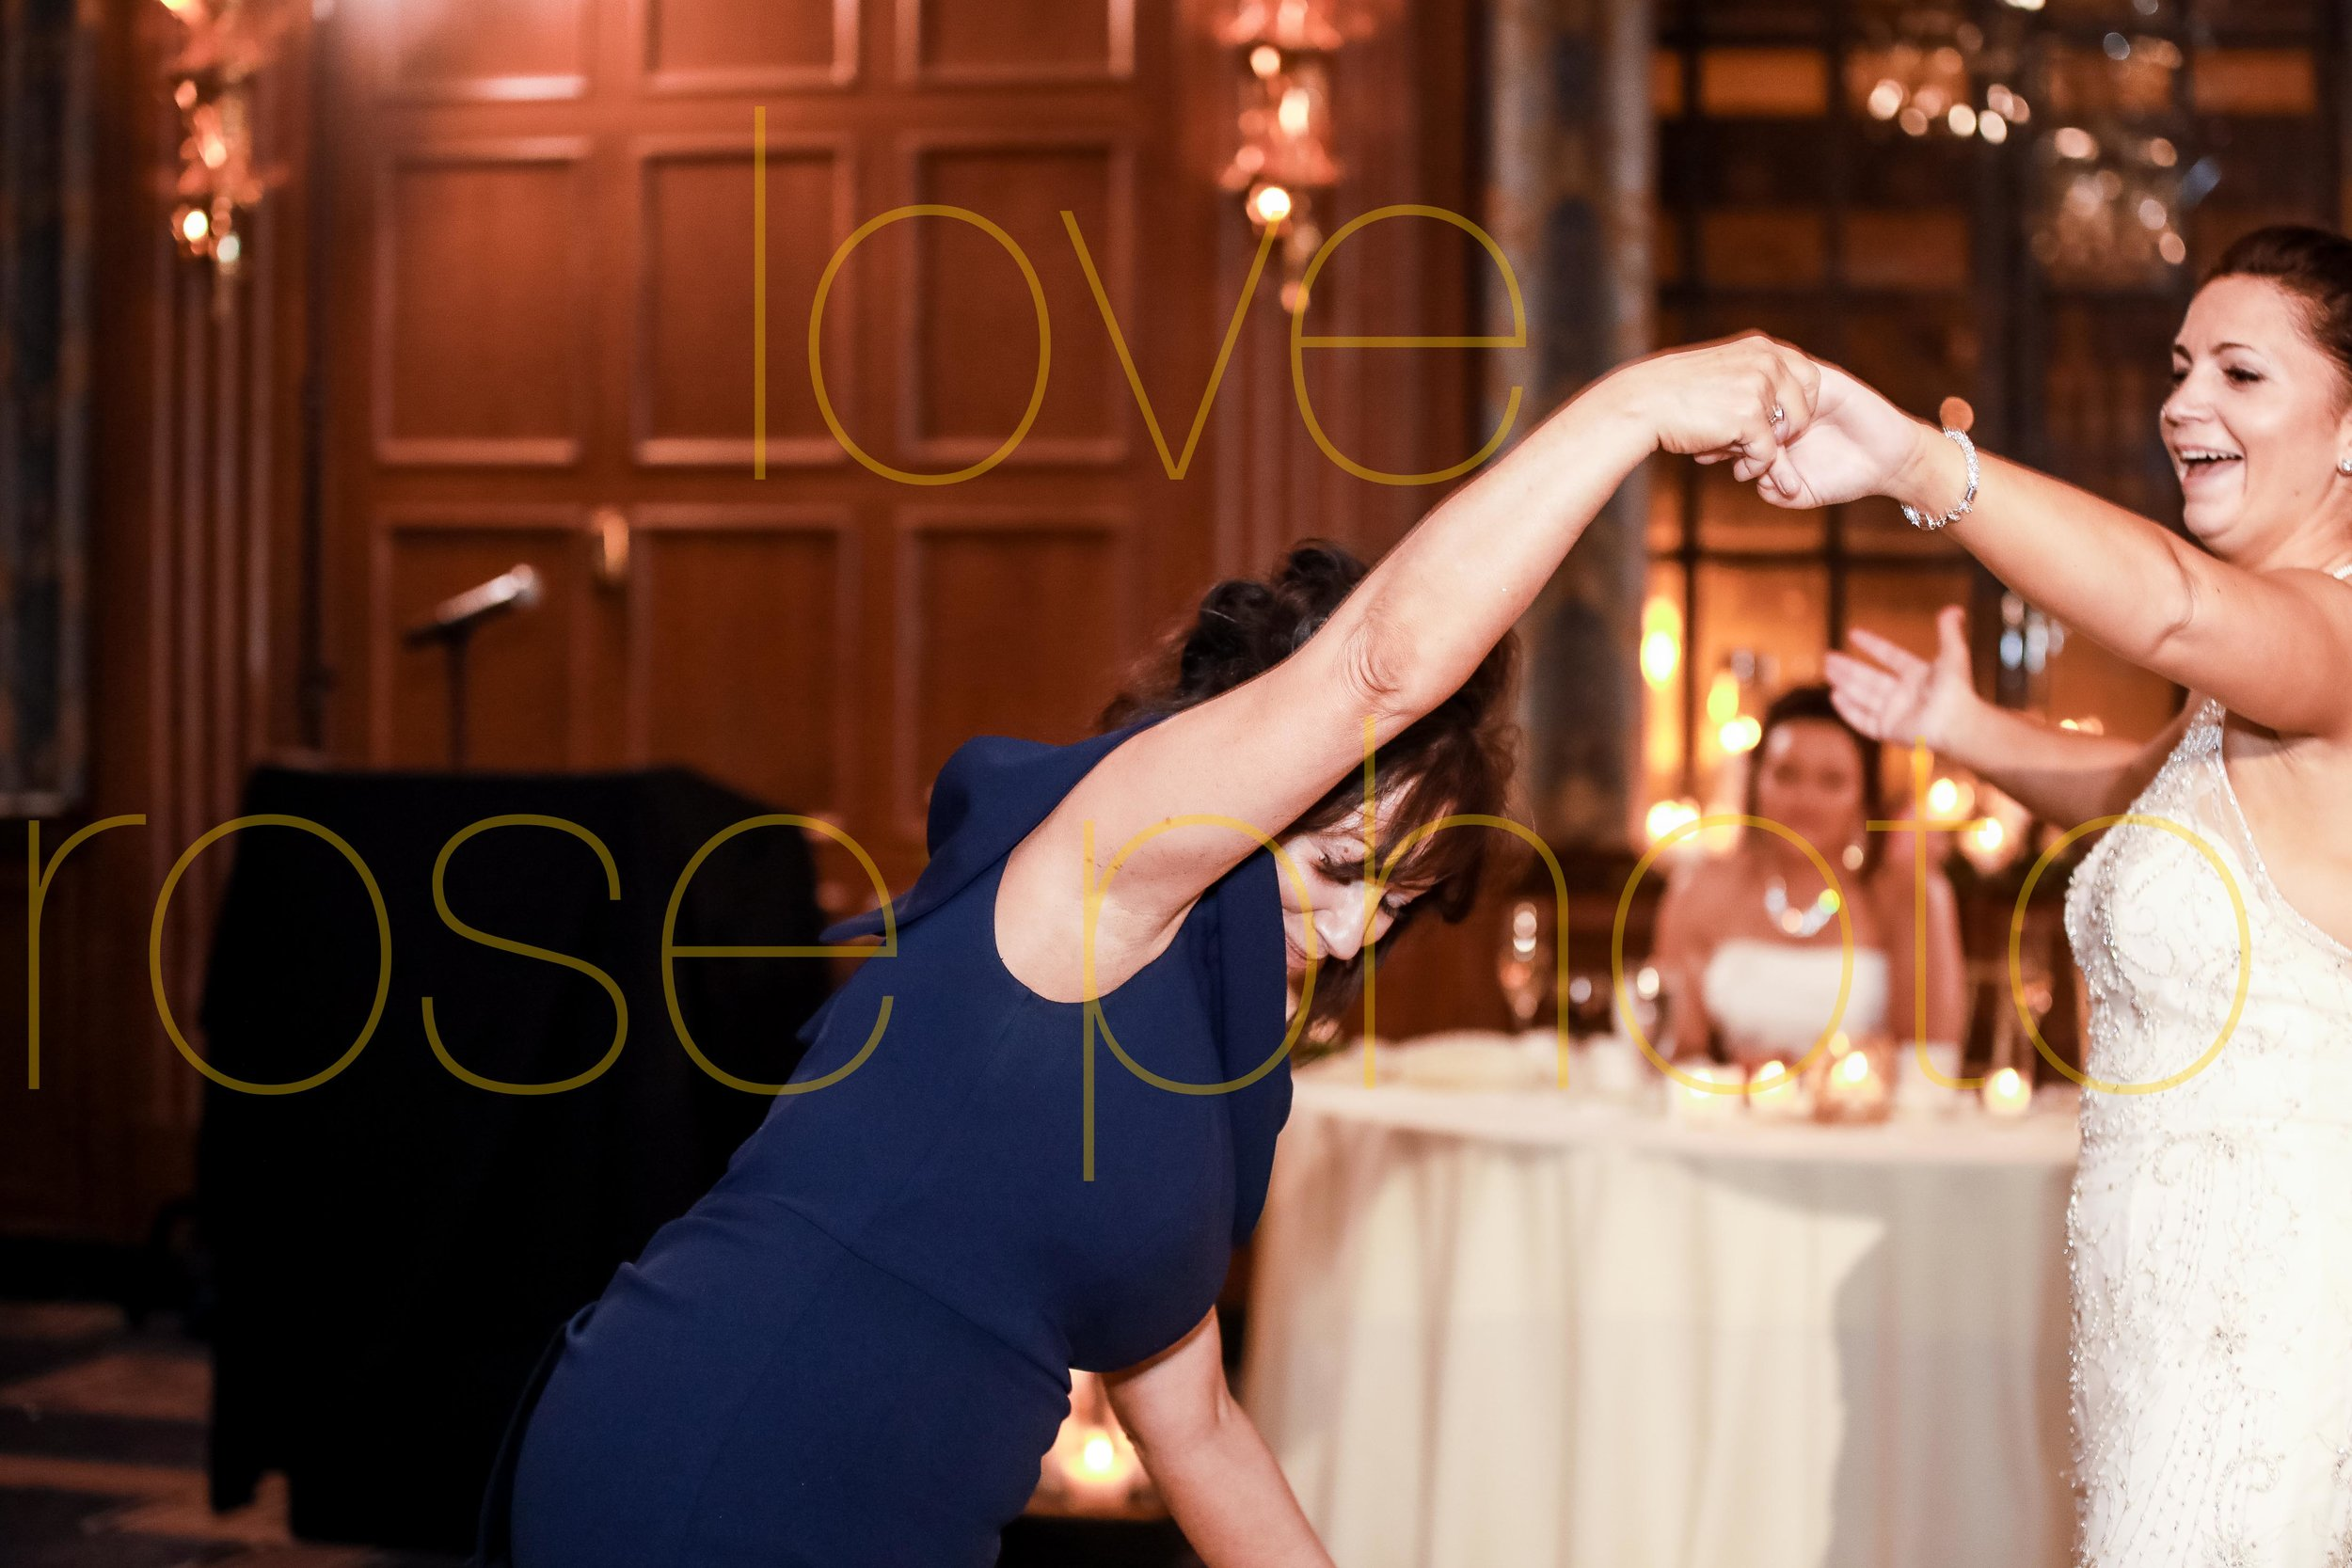 sophie + melissa love rose photo gay wedding chicago pride 2019 -85.jpg